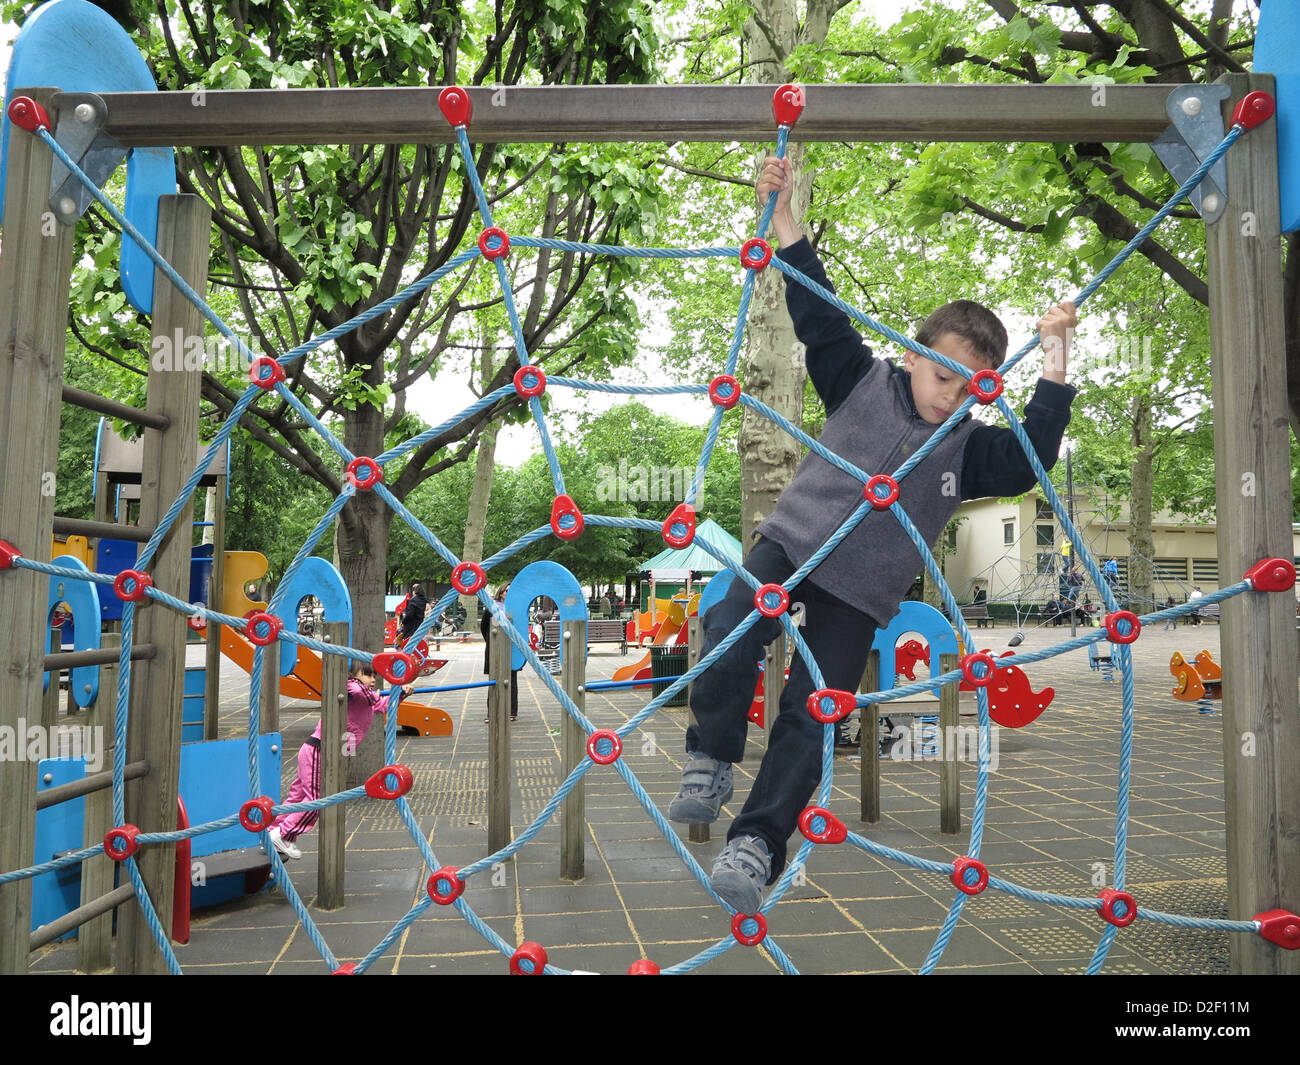 6-year-old boy playing in a park Paris. France. - Stock Image